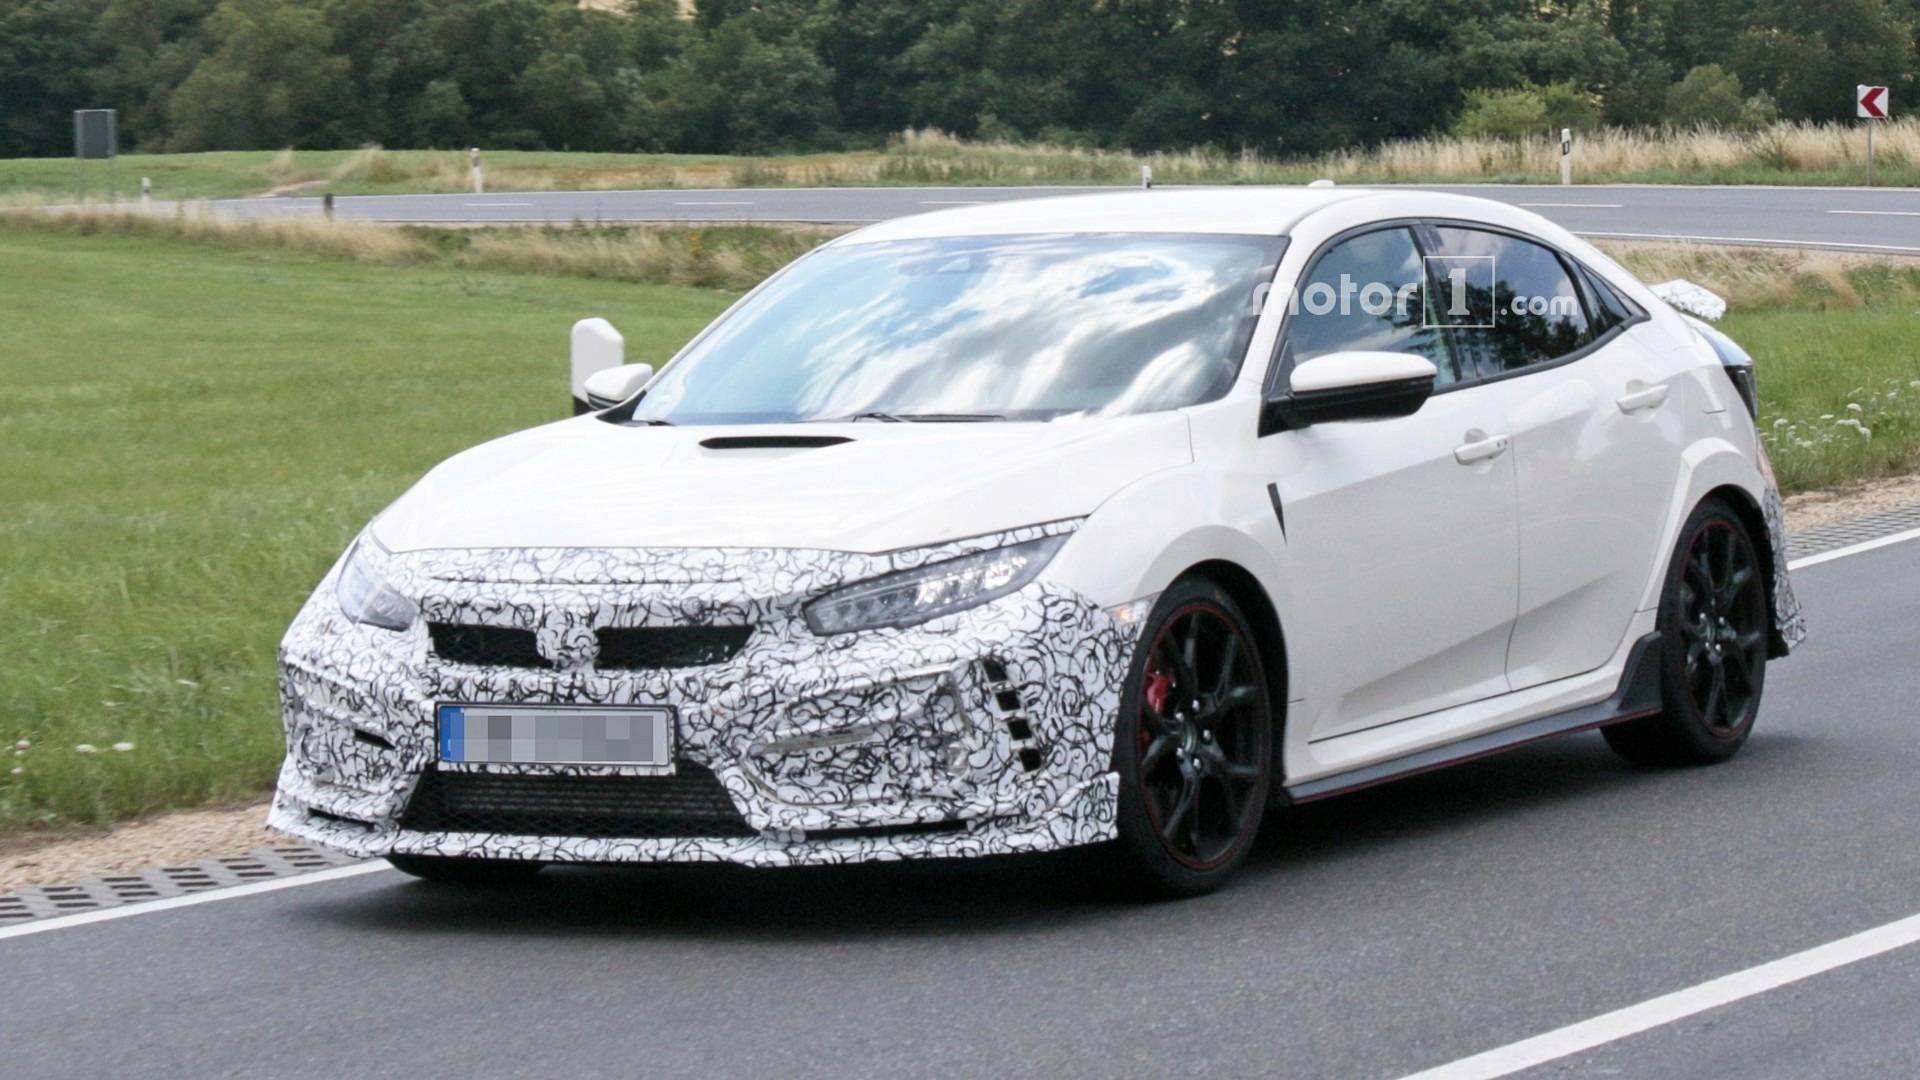 84 The Best 2020 Honda Civic Type R Exterior And Interior